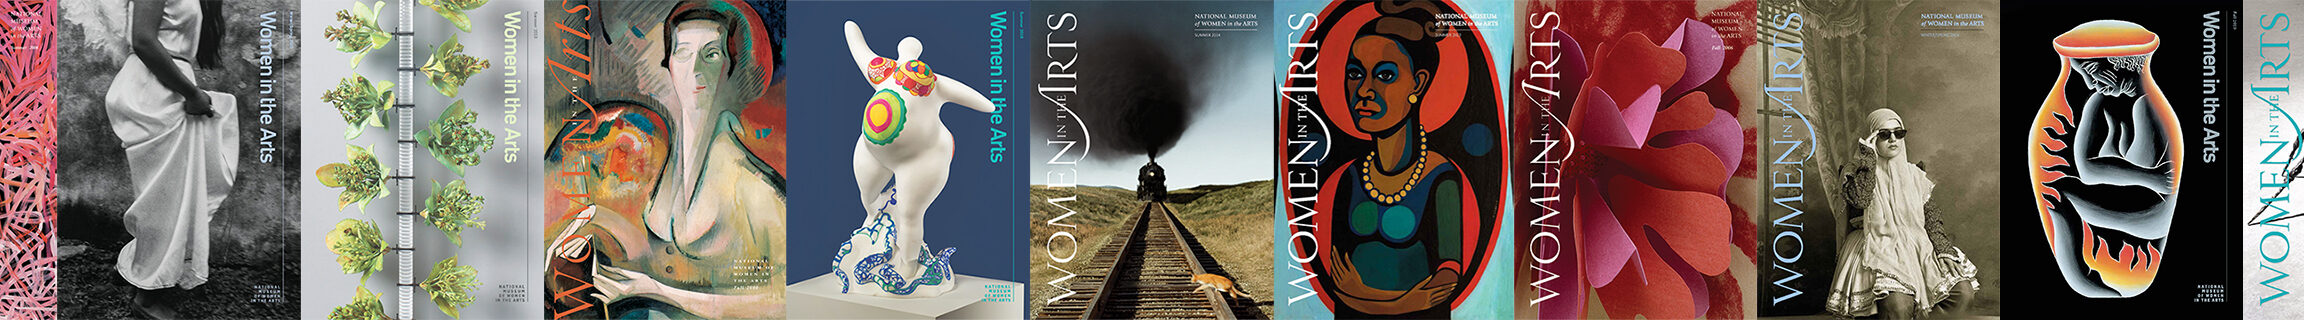 Side-by-side composition of multiple magazine covers published by the museum. All covers have a featured image followed by the text, 'Women in the Arts.'